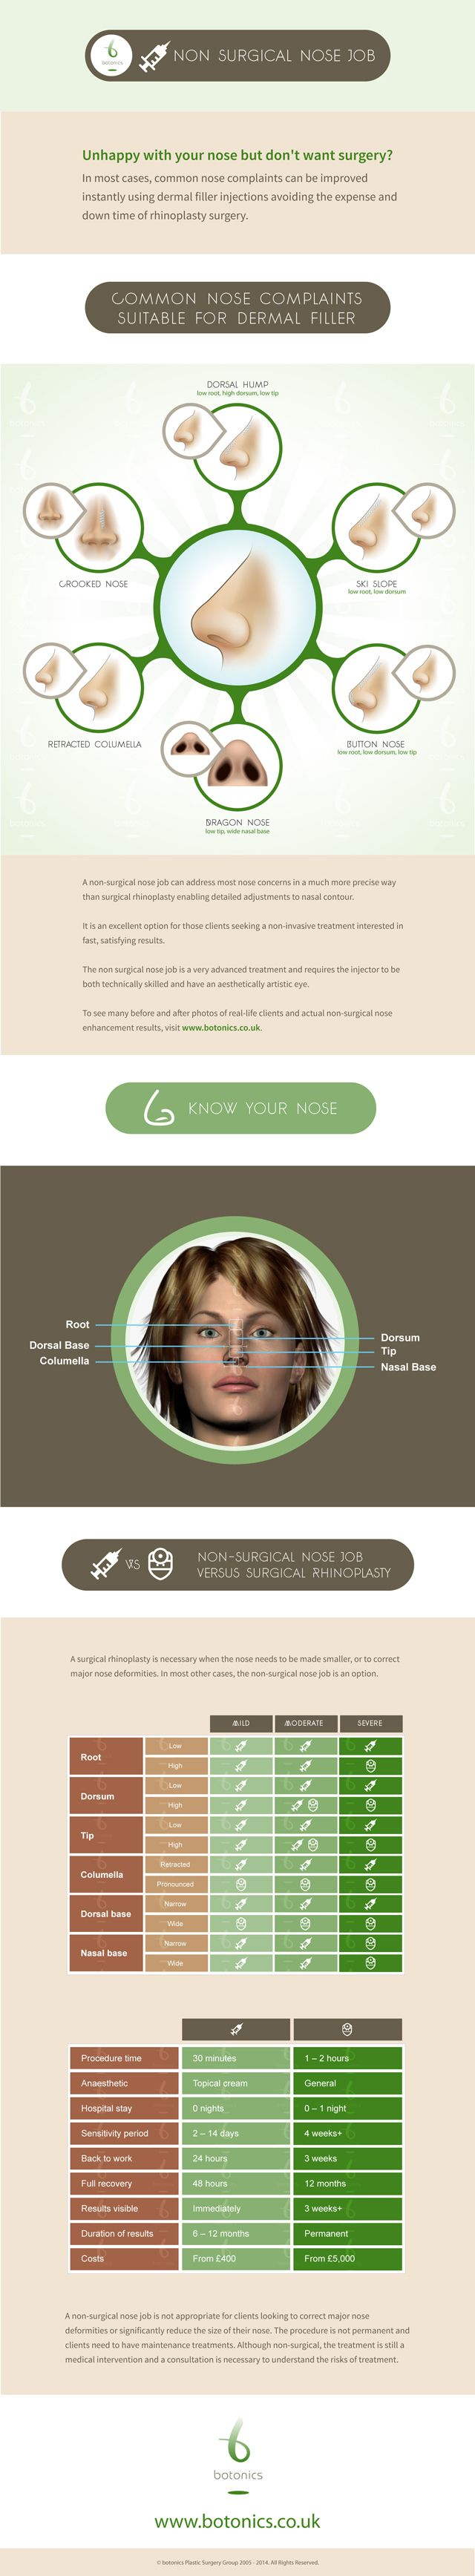 Great infographic explaining he non surgical nose job procedures. #cosmetic #beauty #infographic